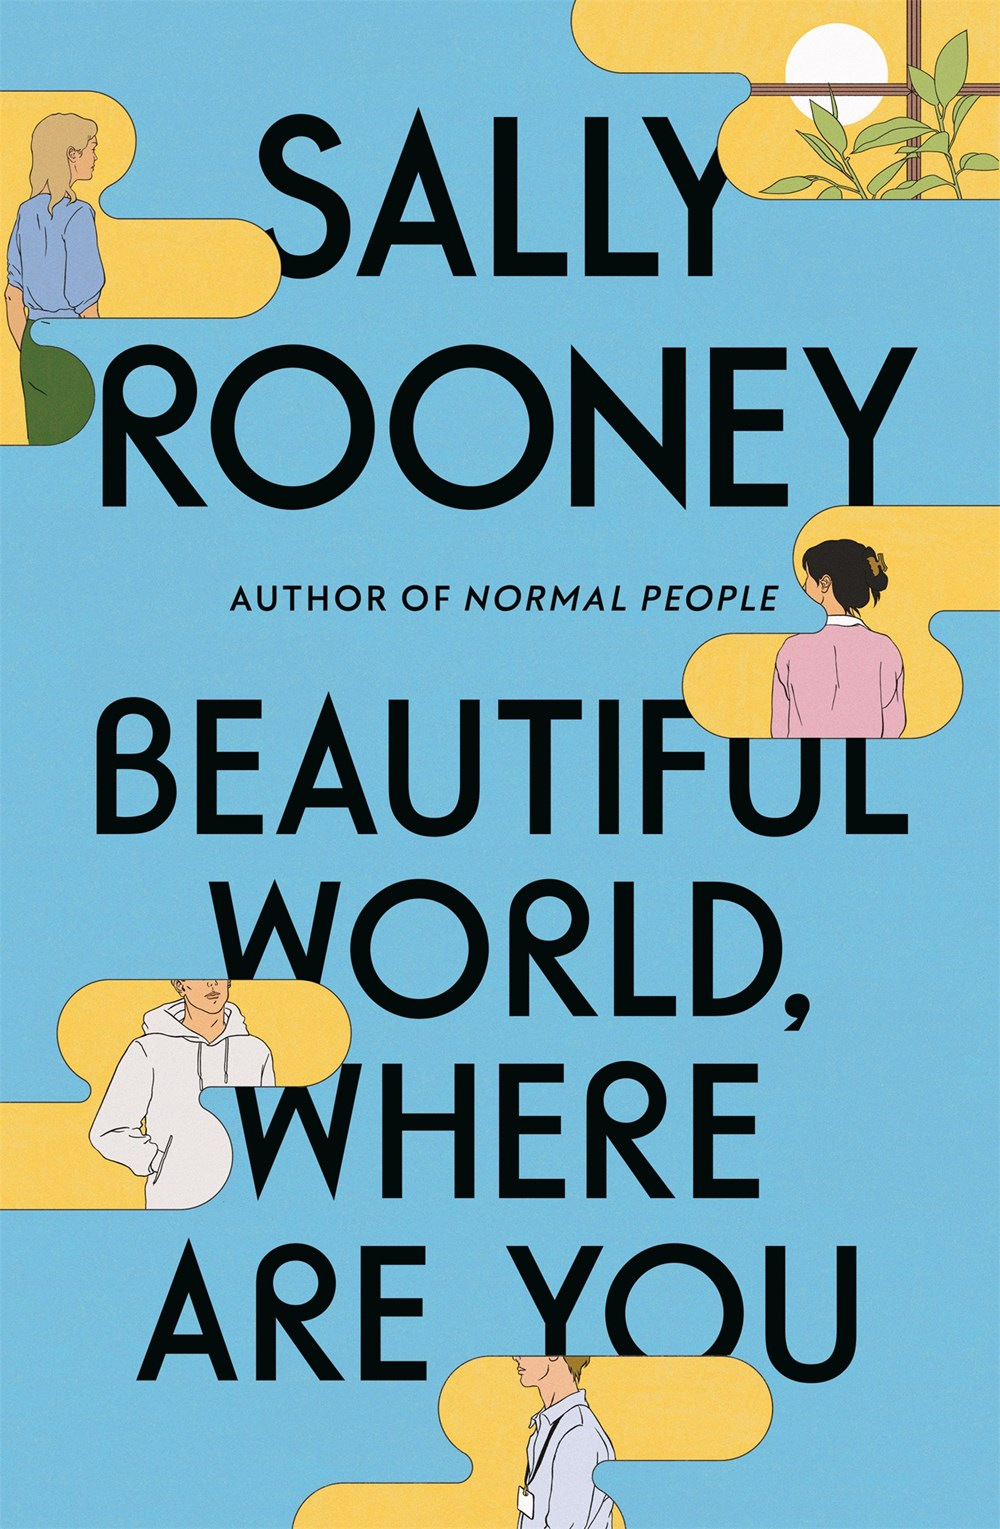 Beautiful World Where Are You cover image